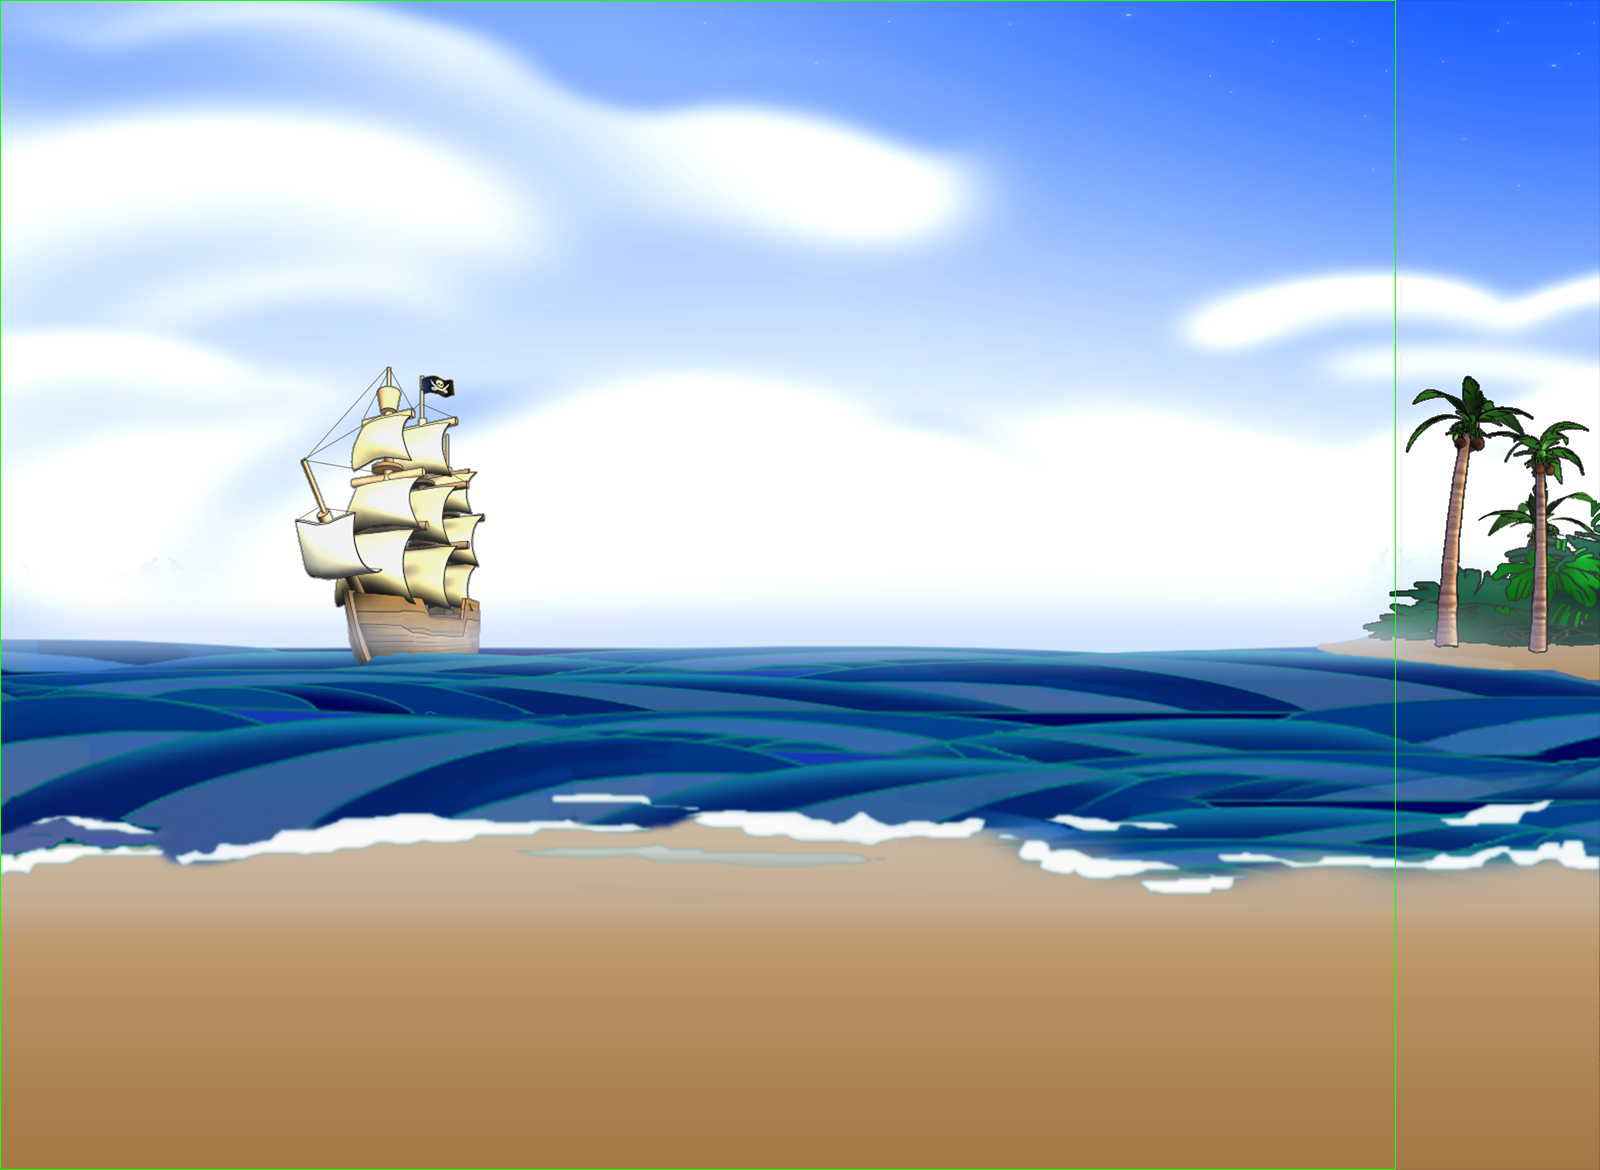 Expansive cove yppedia - Pirate background ...